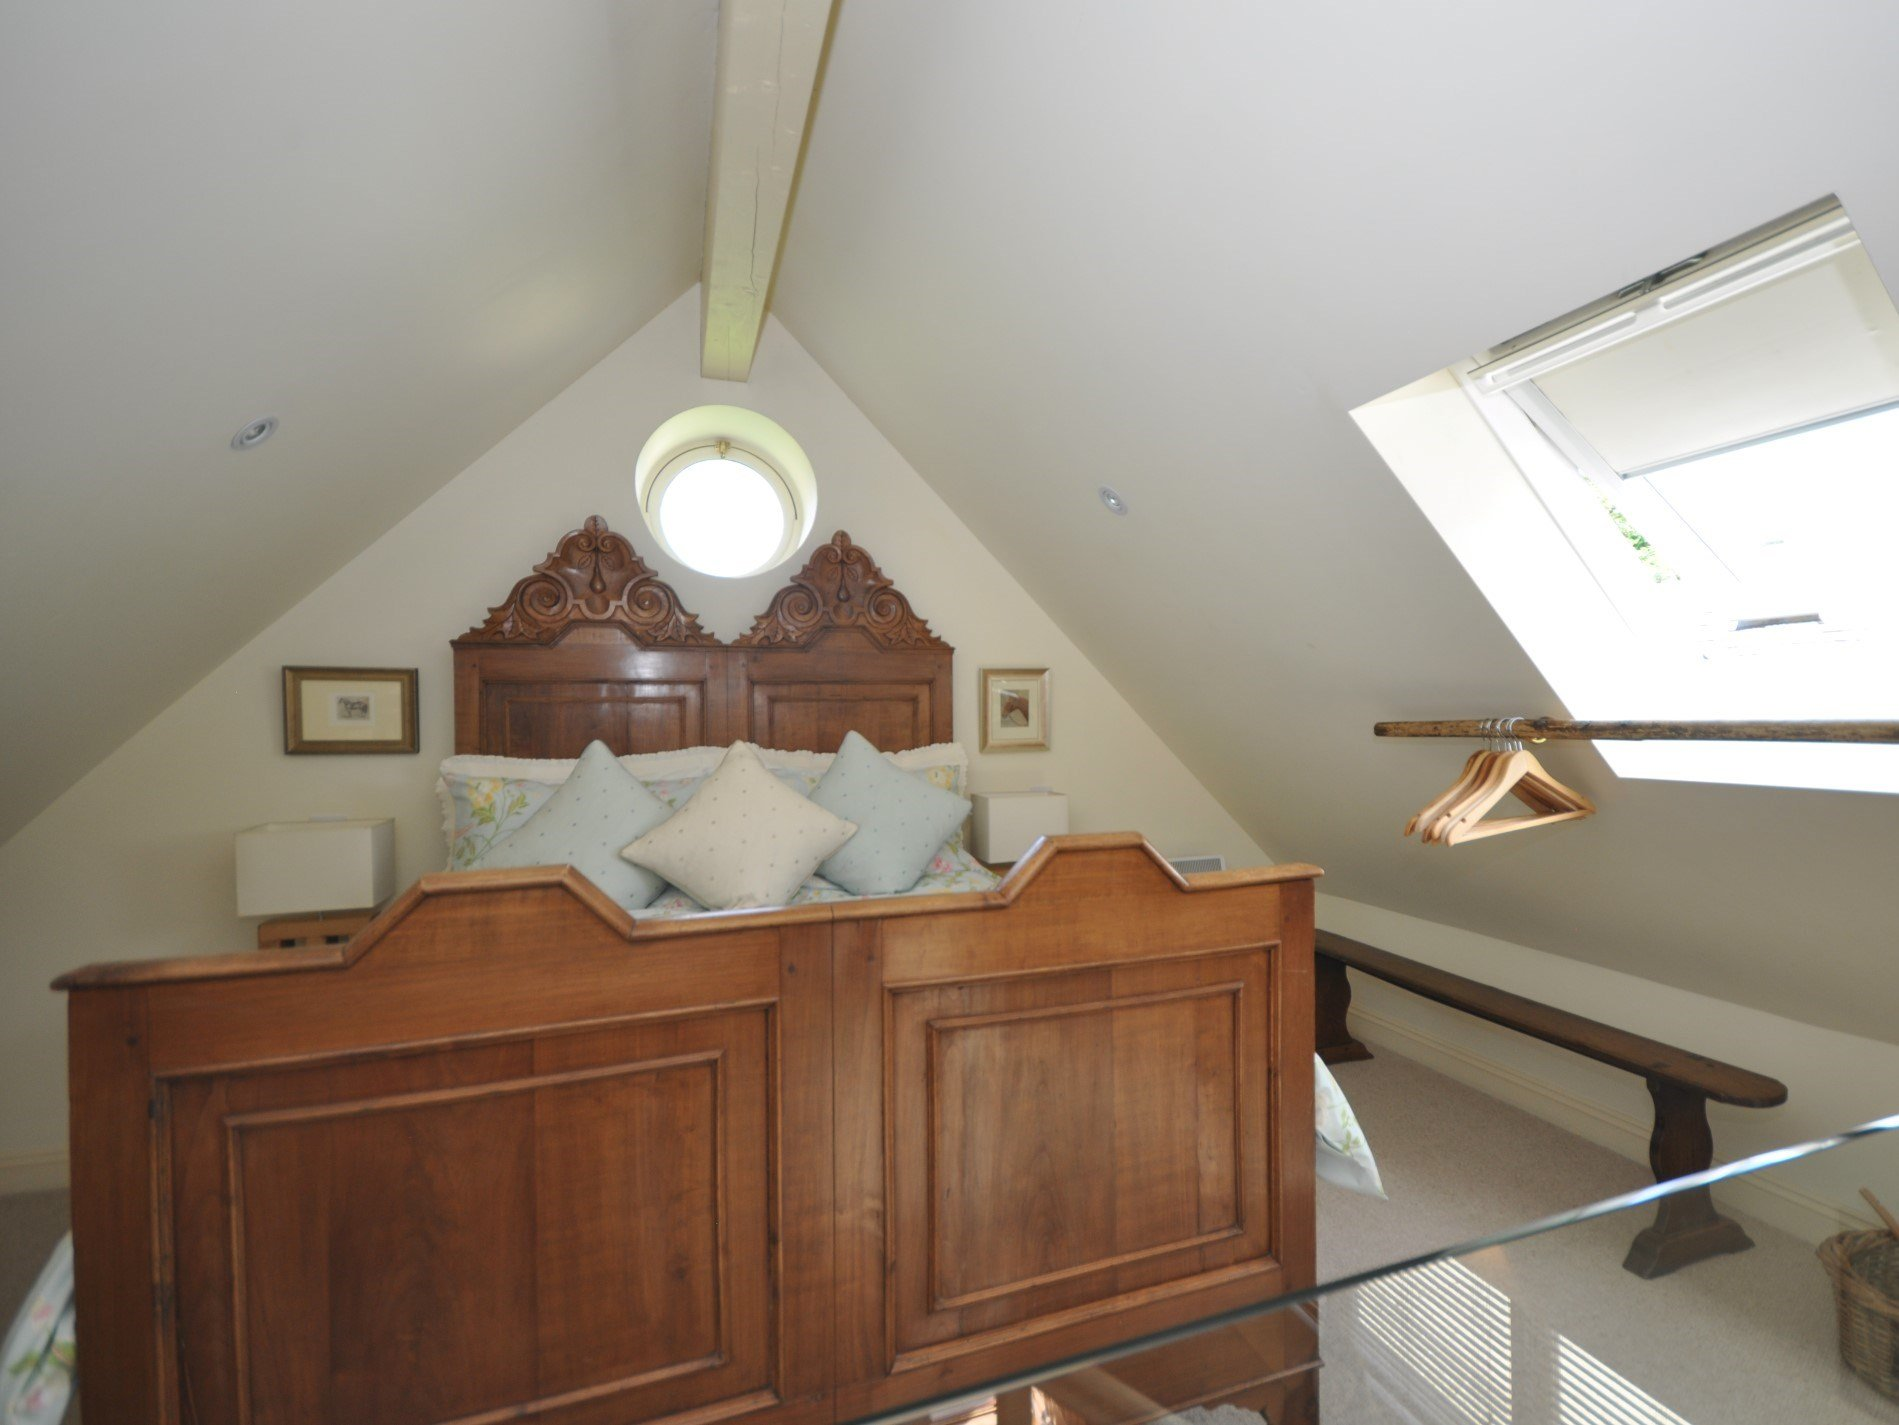 The mezzanine bedroom within the eaves